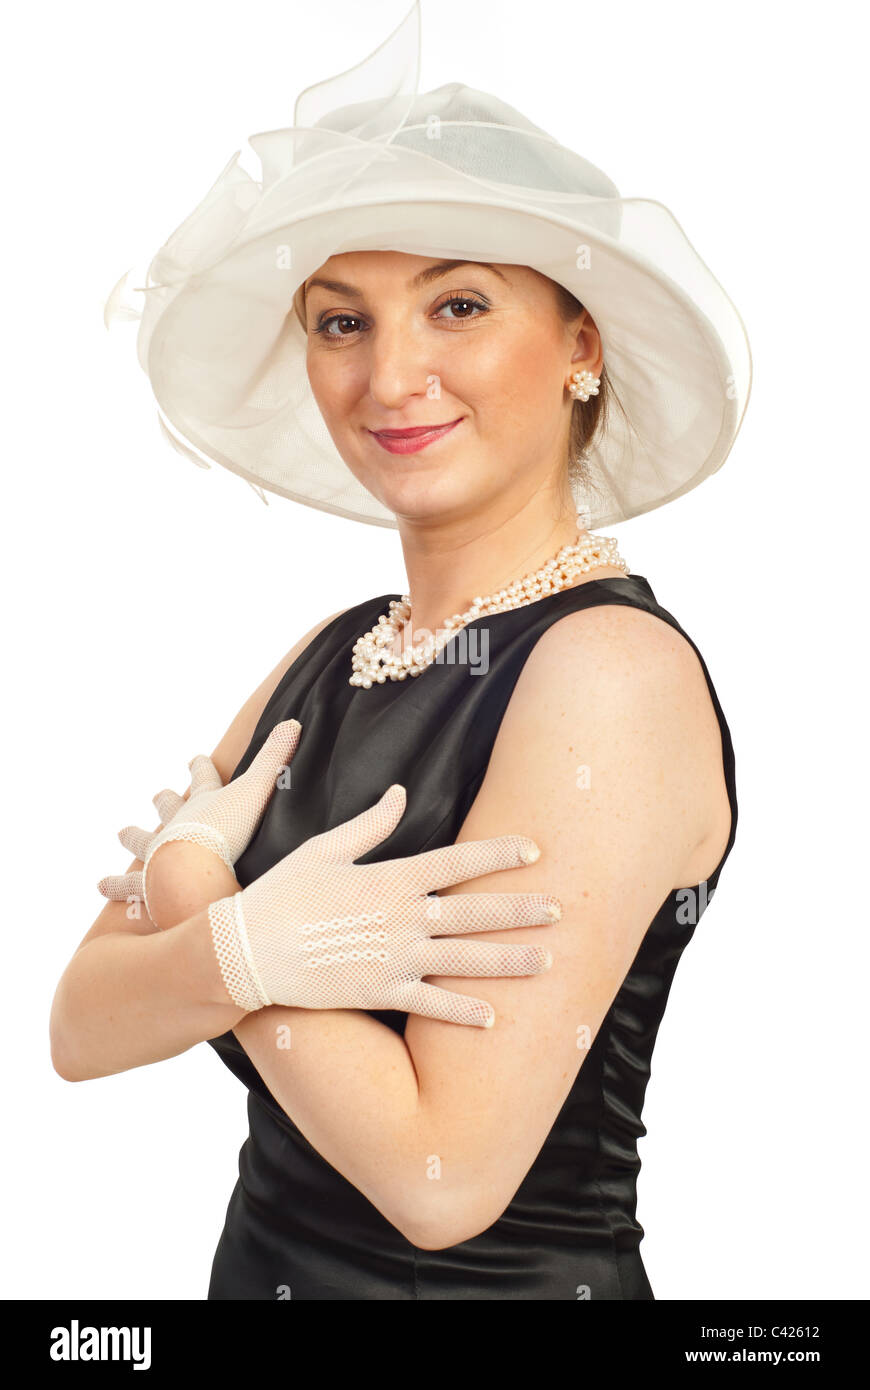 e1ba005c82e2d Smiling elegant woman in satin black dress wearing hat and gloves isolated  on white background -